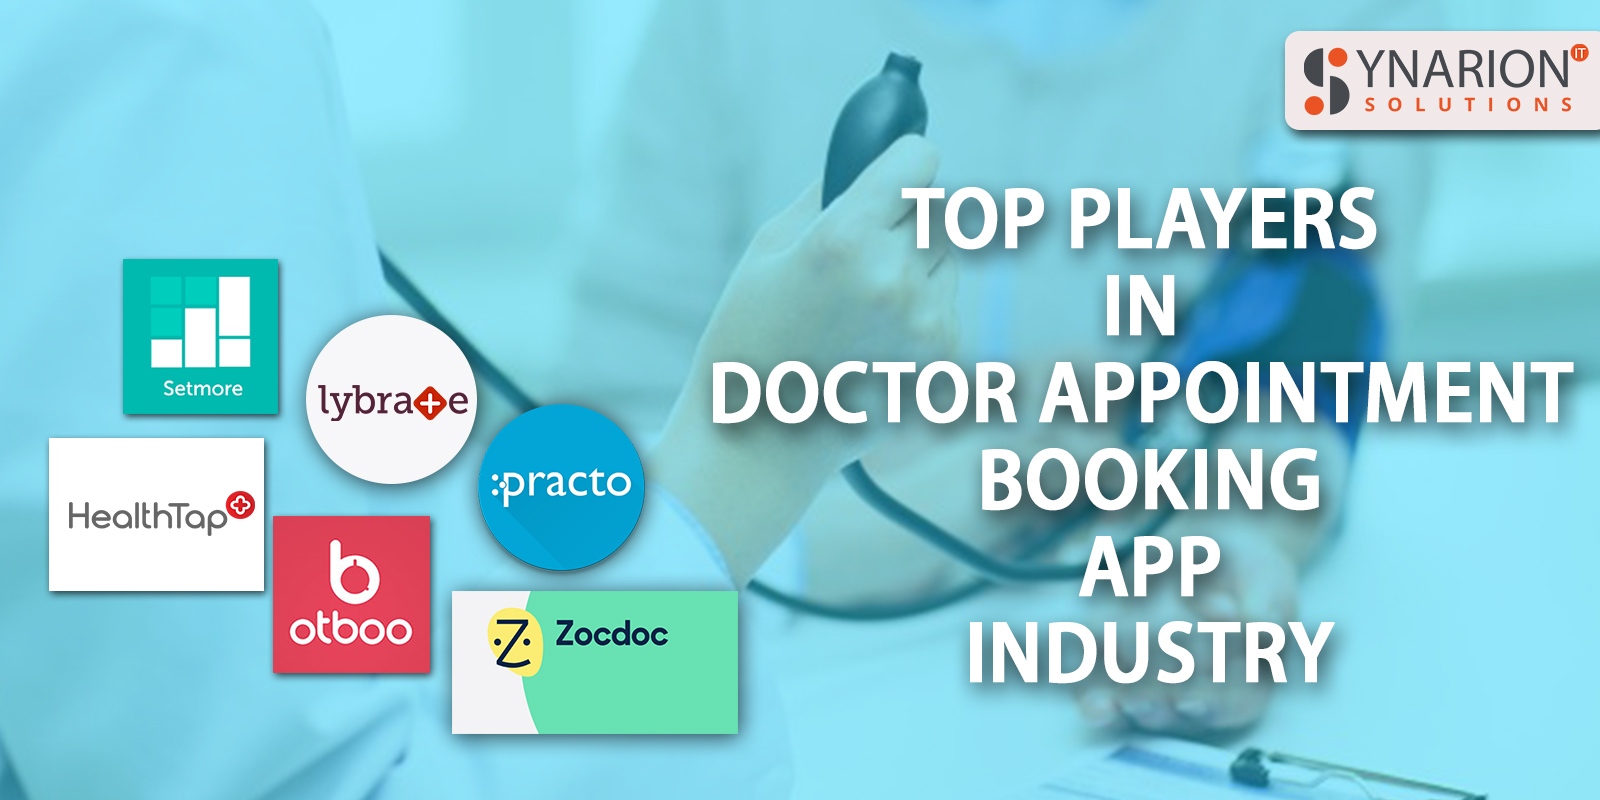 Top Players in Doctor Appointment Booking App Industry